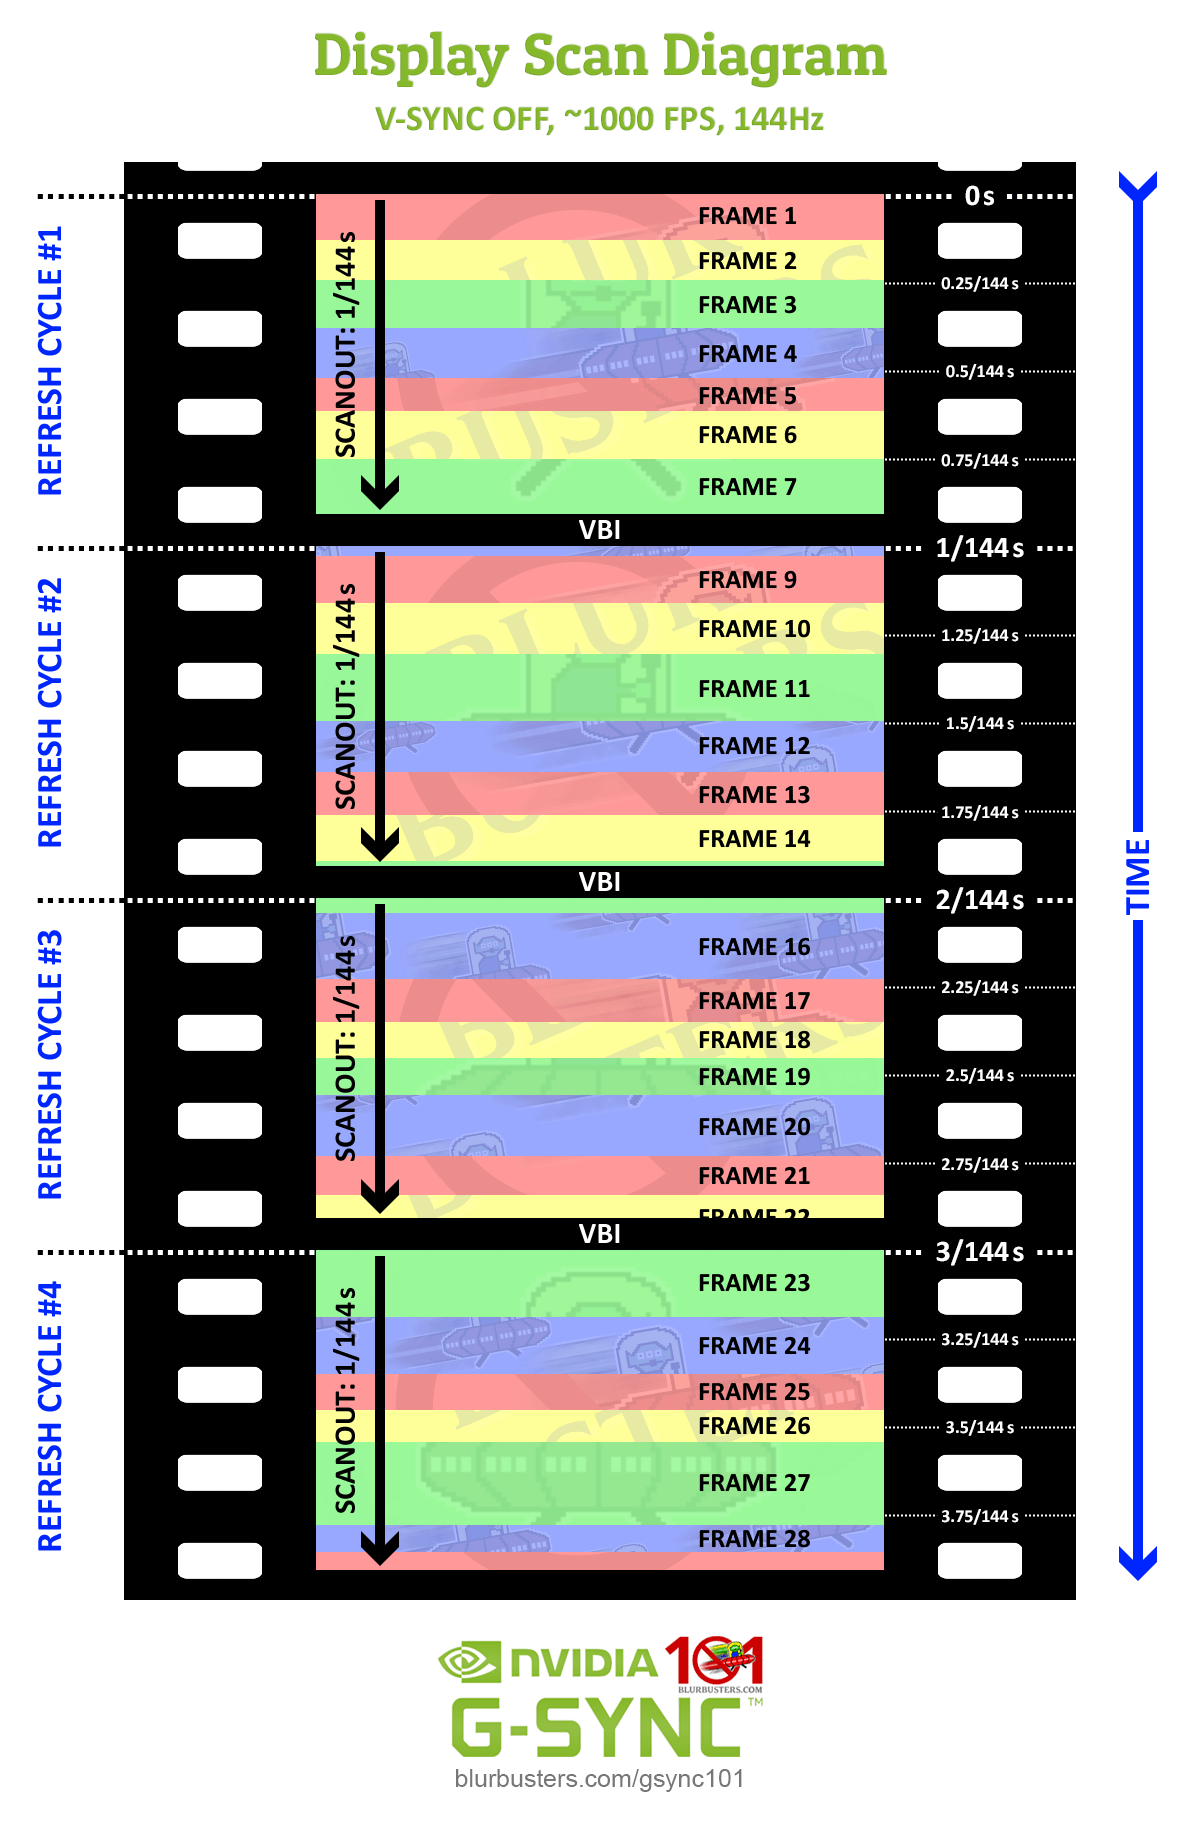 An example of multiple frames per scanout